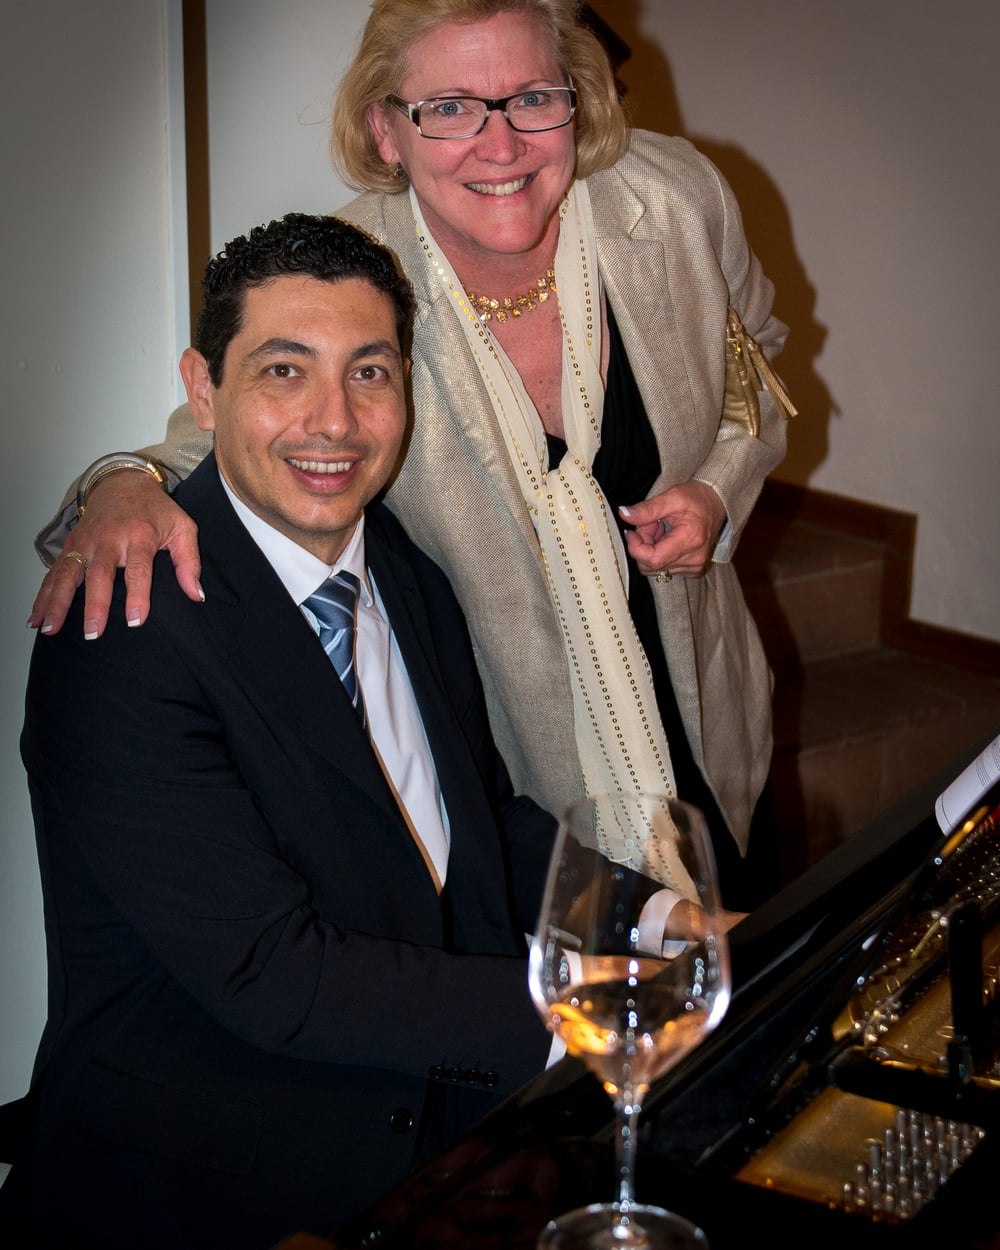 The piano player adds special charm to your evening